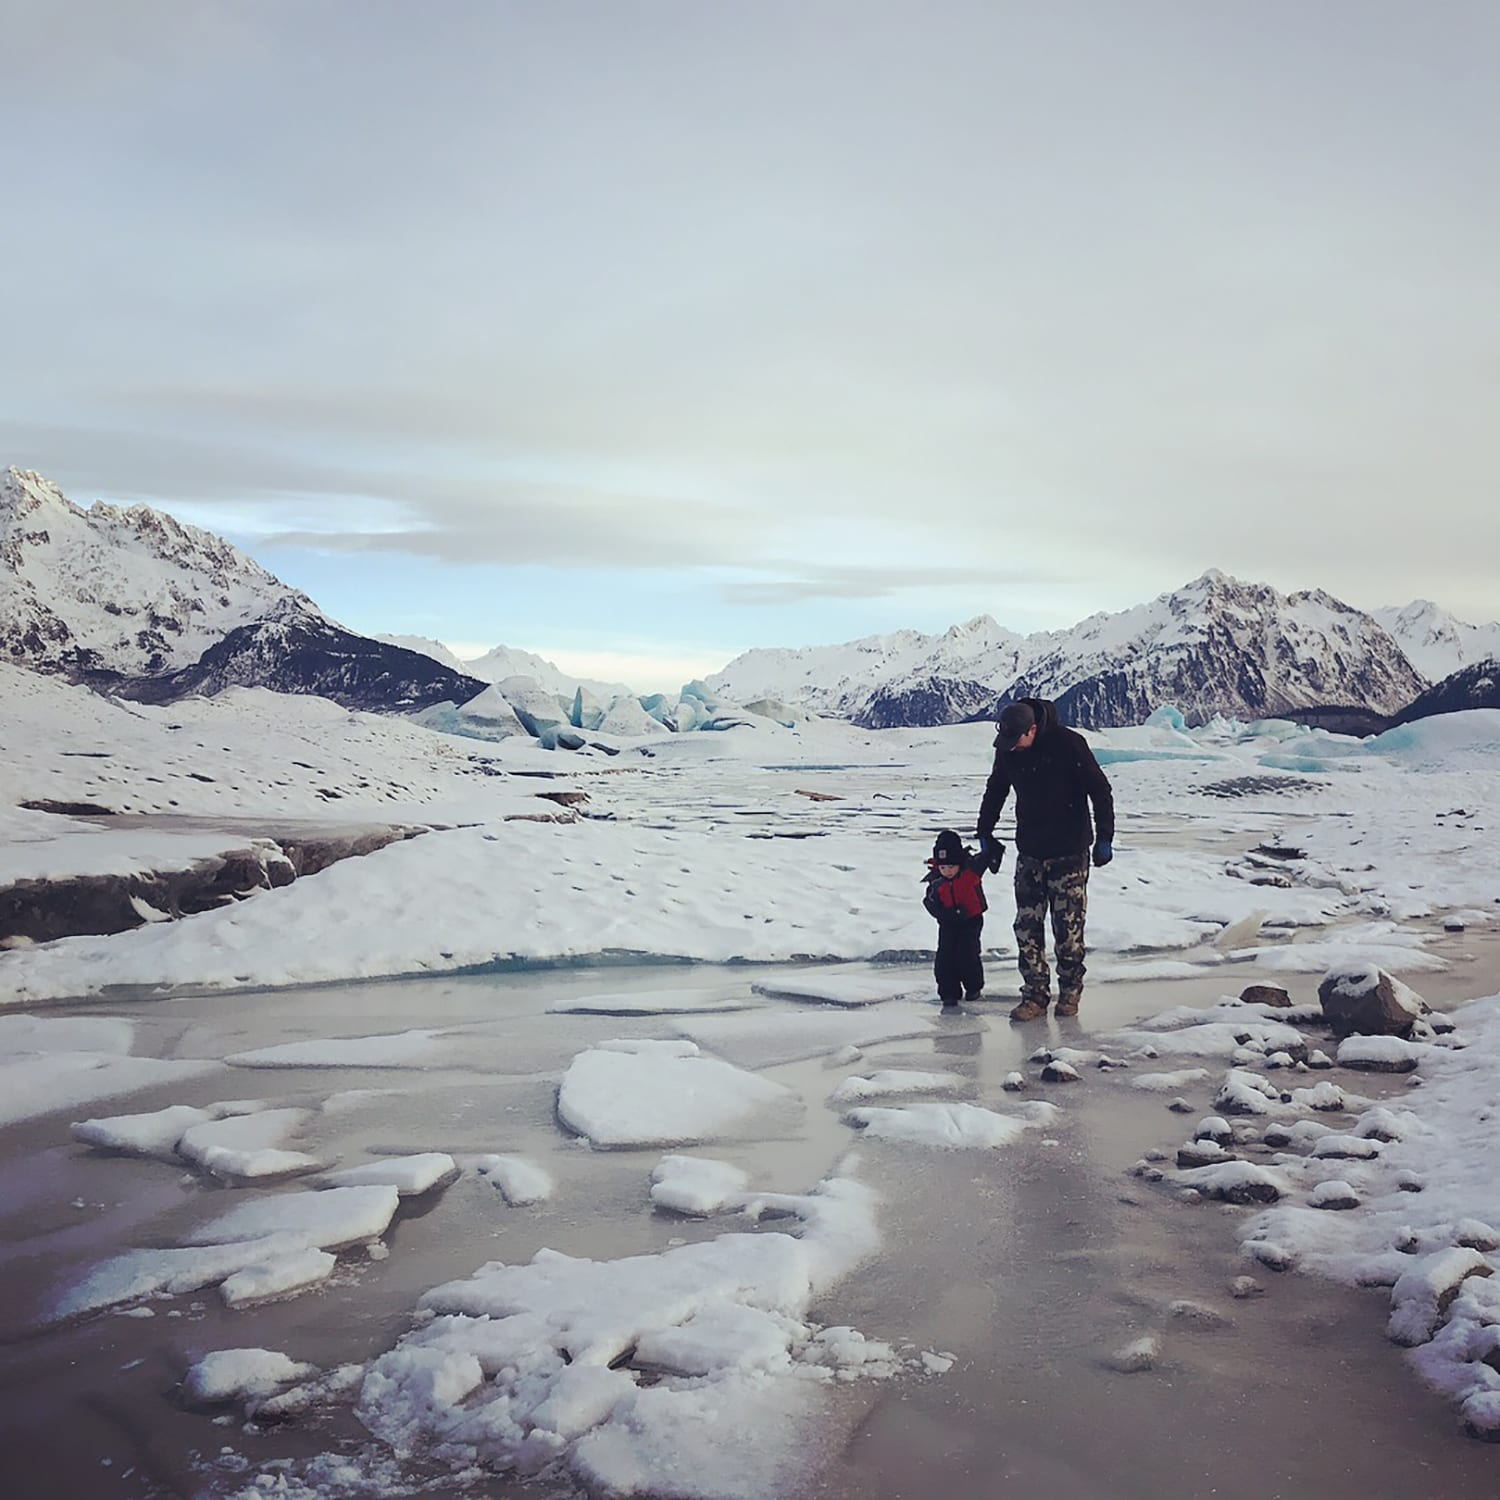 Father and son explore Sheridan Glacier together for the first time. Jared Kennedy, 39, and son Maverick, 3, both of Cordova walk along the frozen lake at Sheridan Glacier on Christmas Eve. The weather was calm, no wind, and not too cold; perfect for exploring. The elder Kennedy has landed on the ice with his Super Cub, but never hiked the glacier trail to walk on it. It was a memorable first for both. Photo by Vivian Kennedy/The Cordova Times